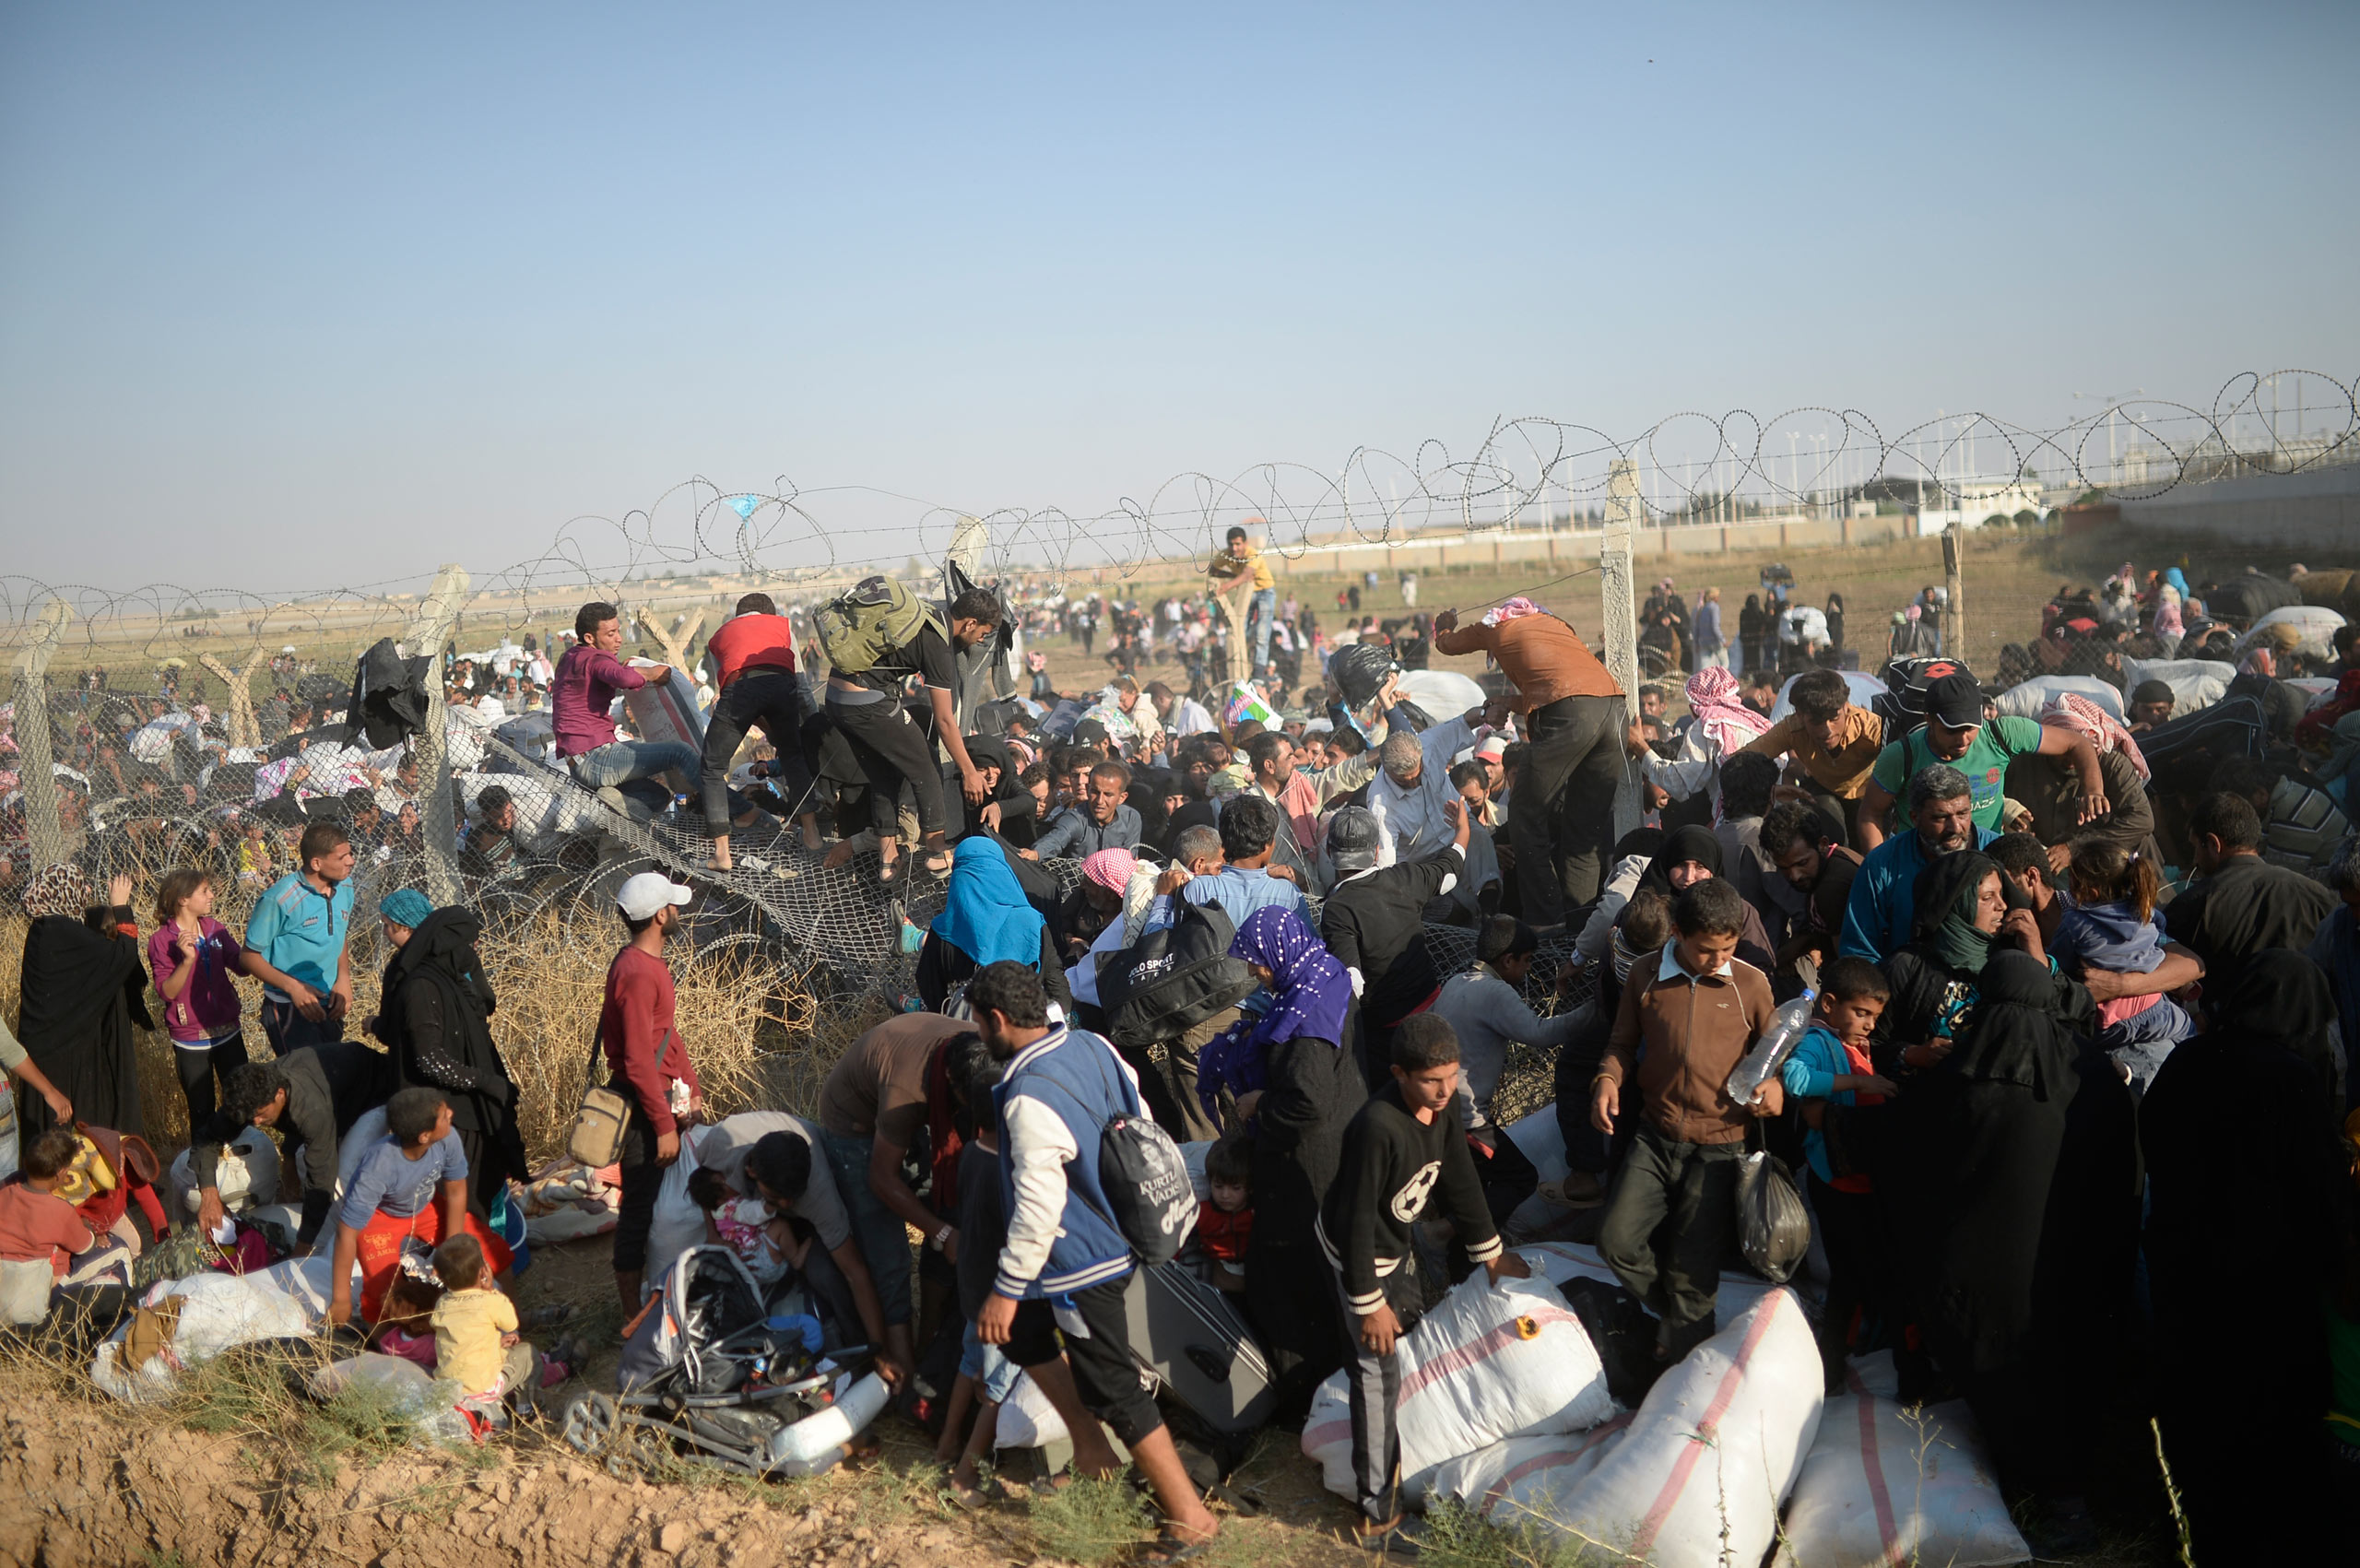 Thousands of Syrians break through the ripped fences, crossing illegally from the Syrian town of Tell Abyad into the Turkish crossing gate in Akçakale, in the Şanlıurfa province. June 14, 2015.